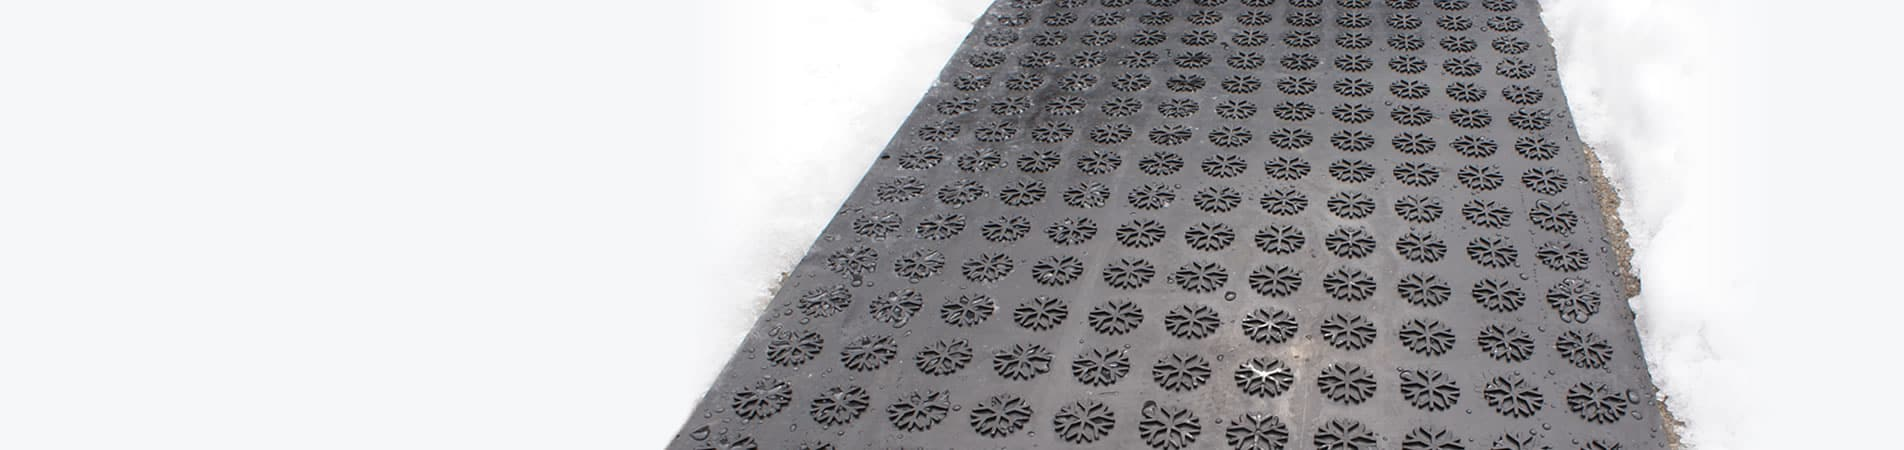 Hot Flake heating mat banner image